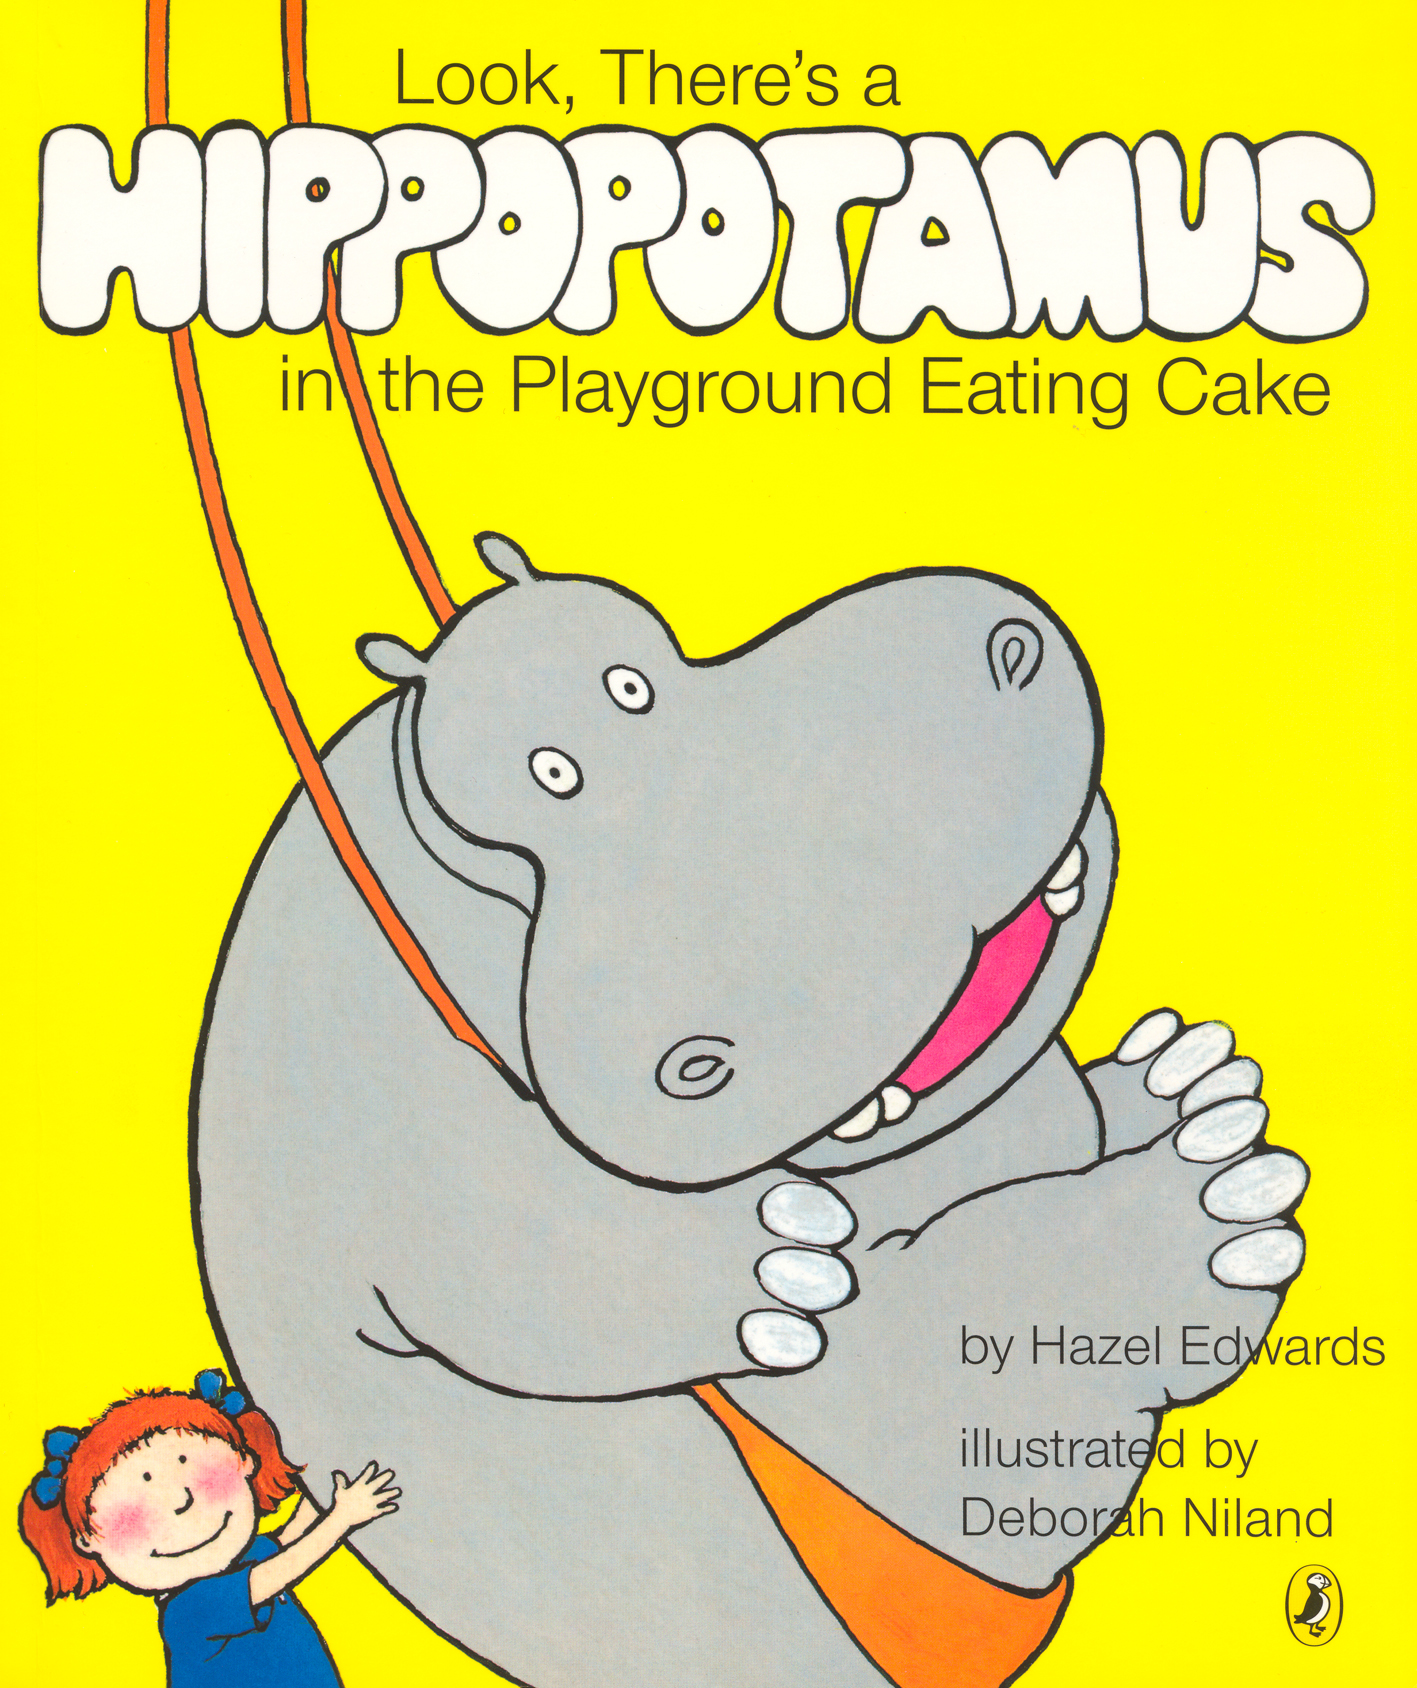 Look, There's a Hippopotamus in the Playground Eating Cake by Hazel Edwards & Deborah Niland, ISBN: 9780143501404